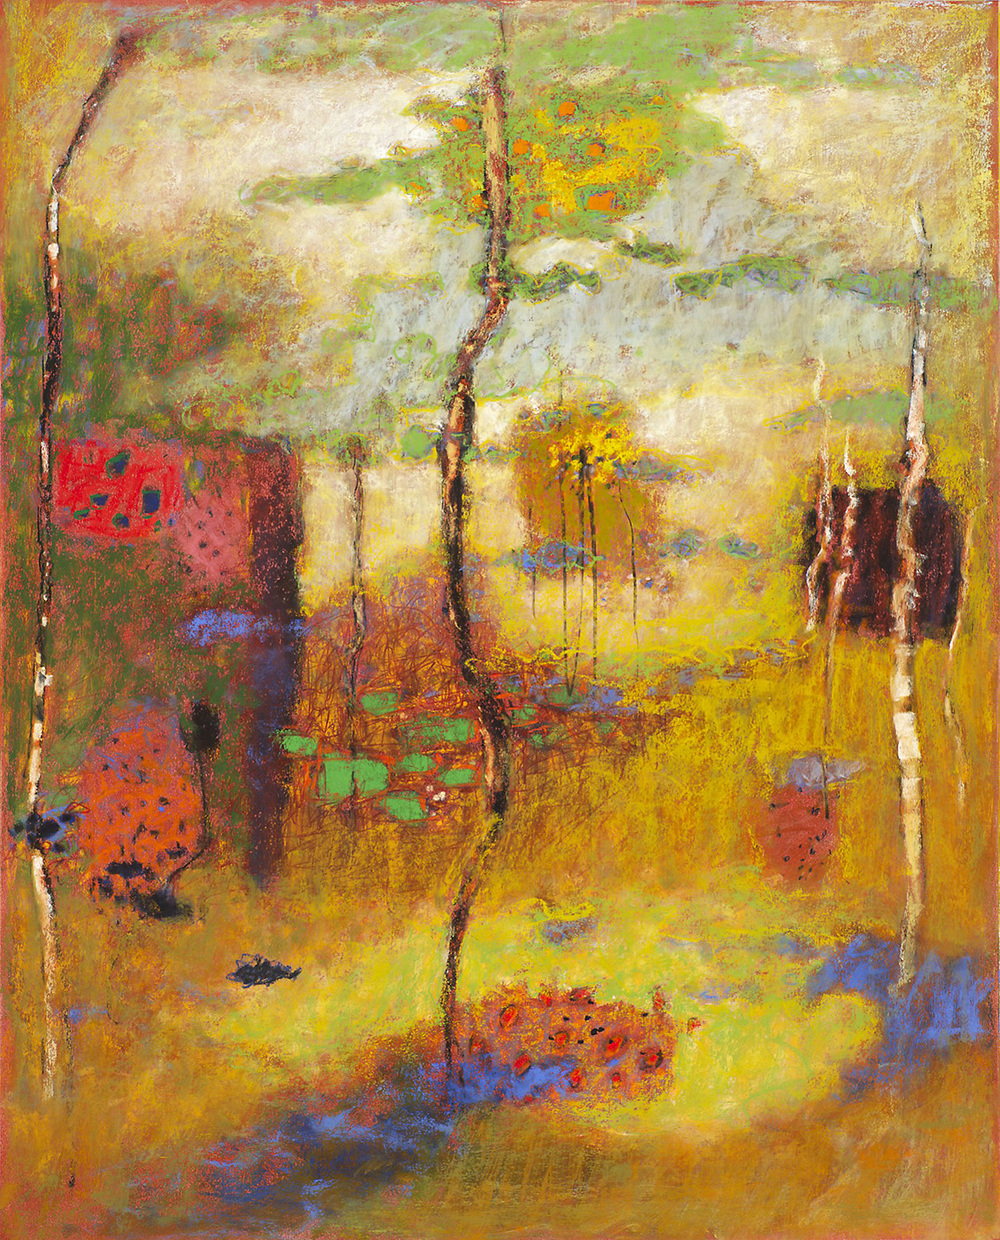 Expansive Interaction   | pastel on paper | 30 x 24"